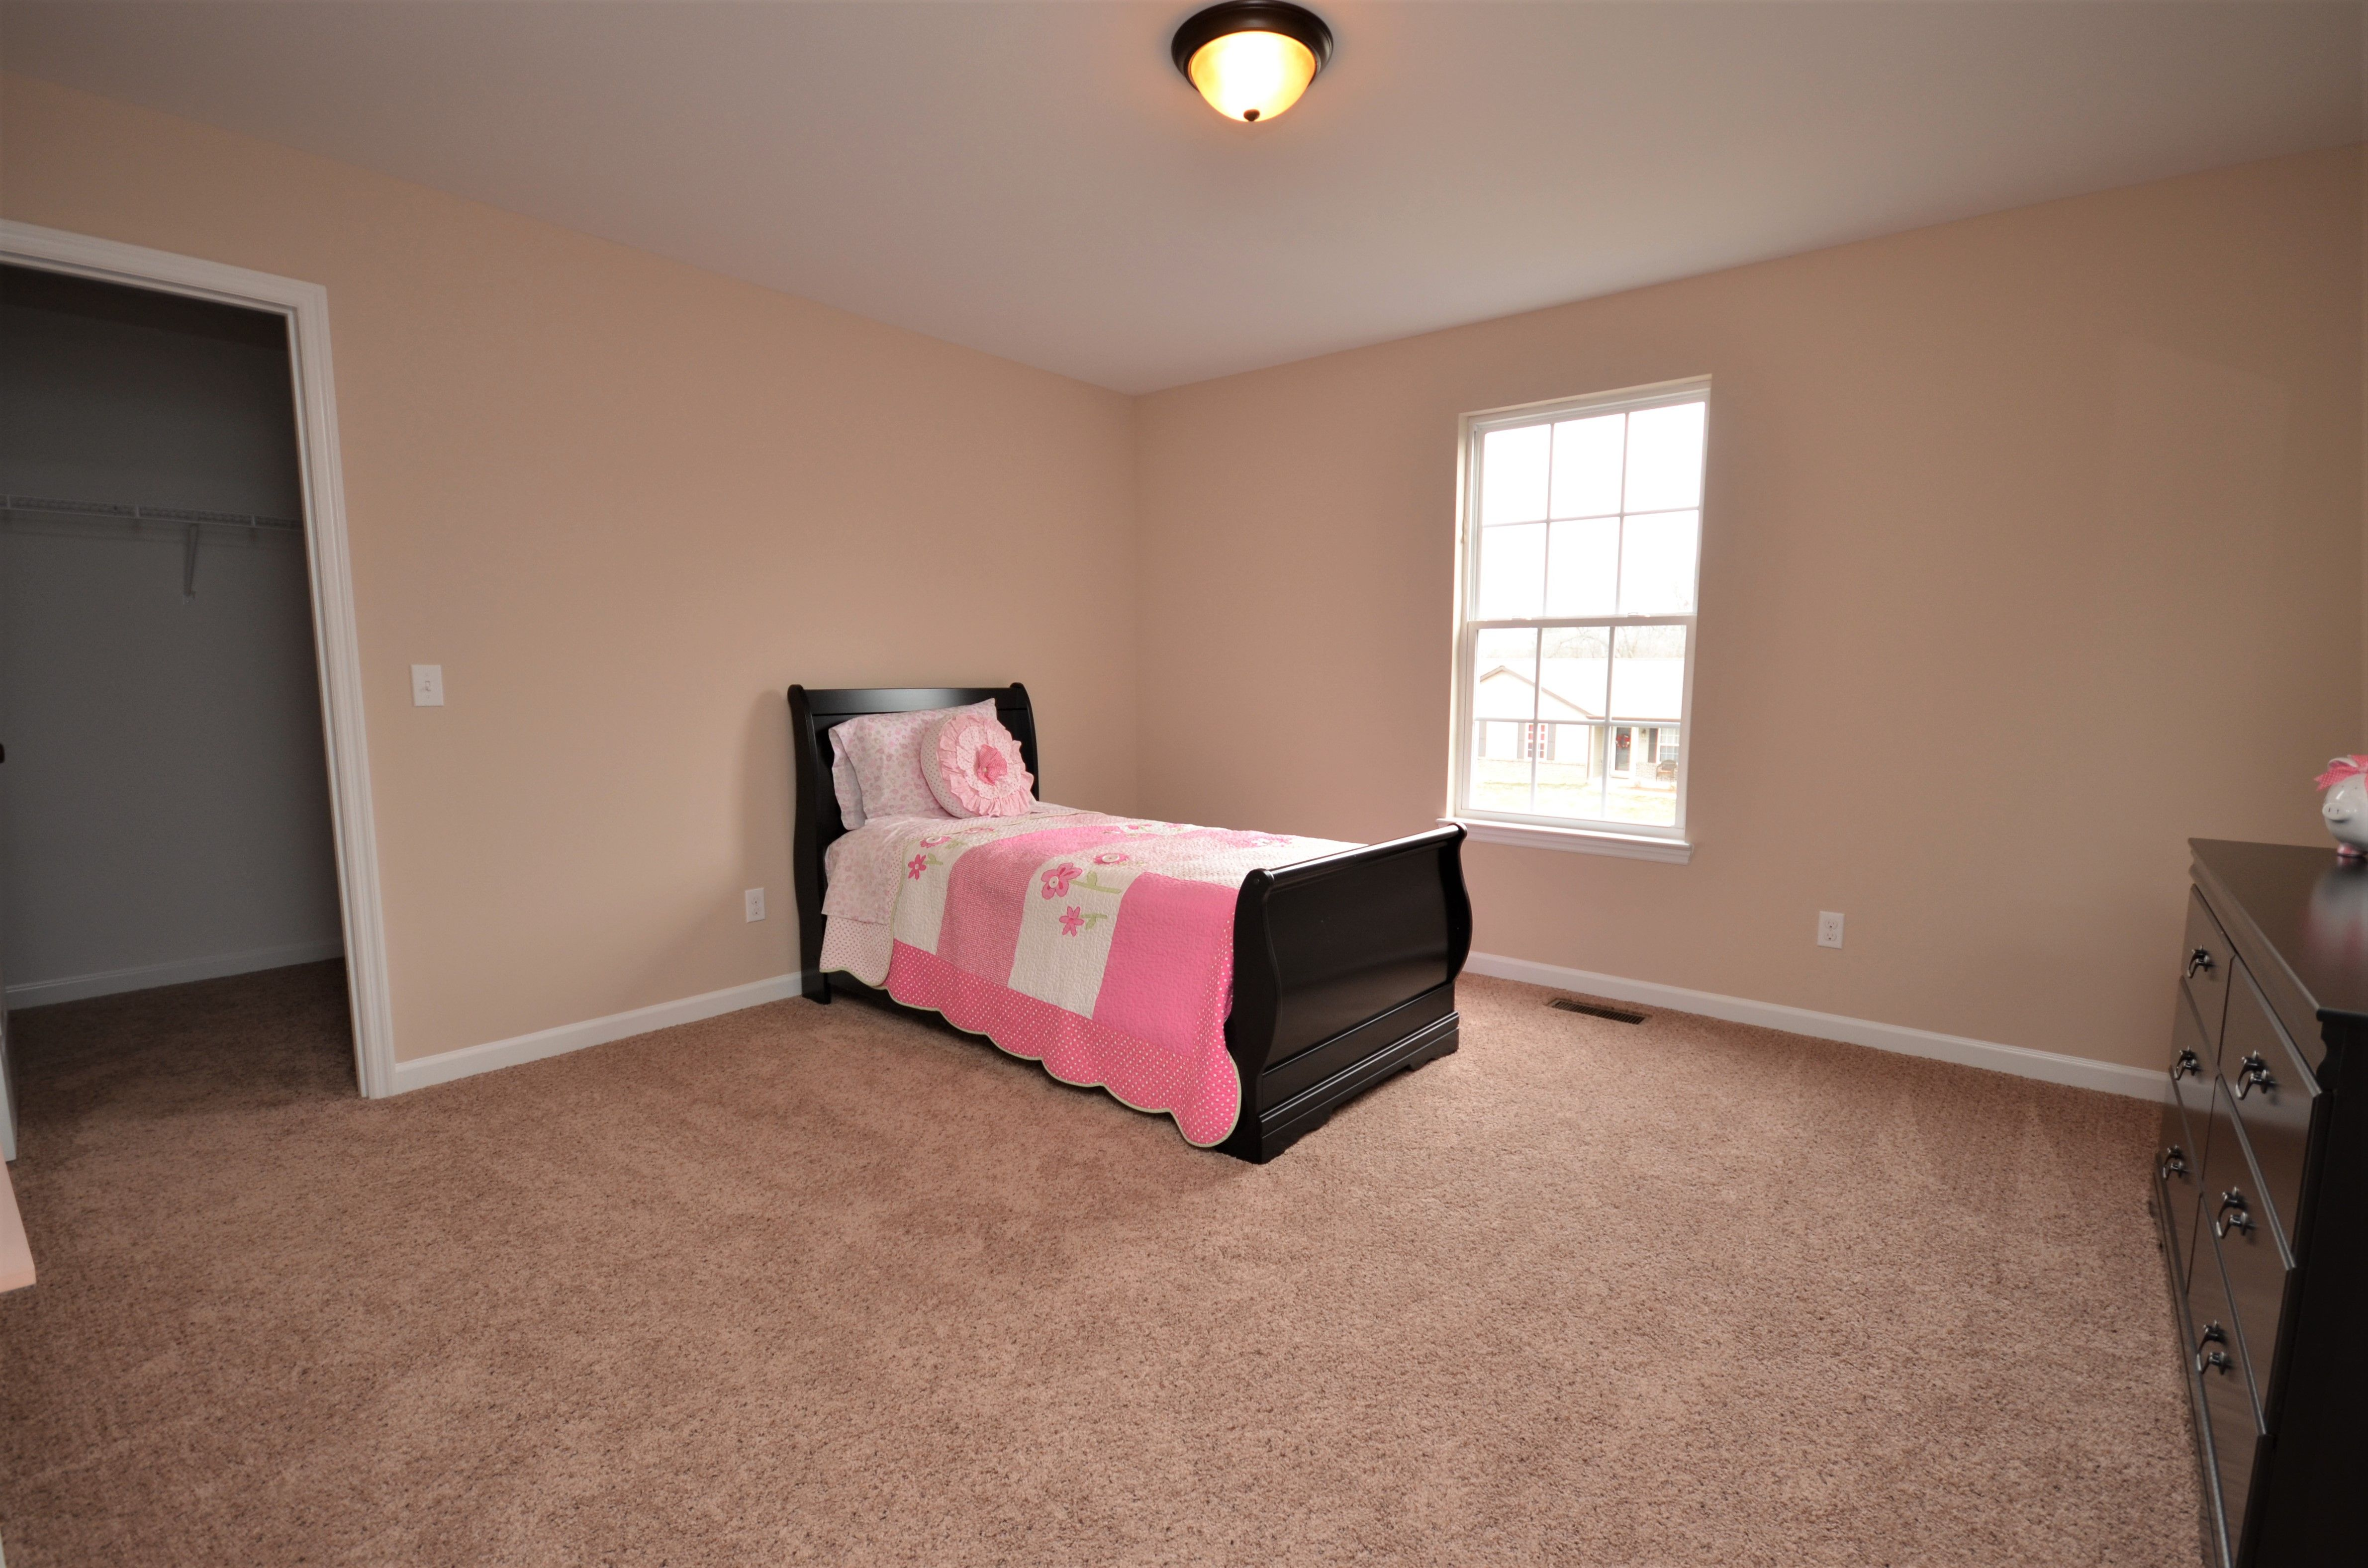 Bedroom featured in The Verona By Cannon Builders, Inc.  in St. Louis, MO